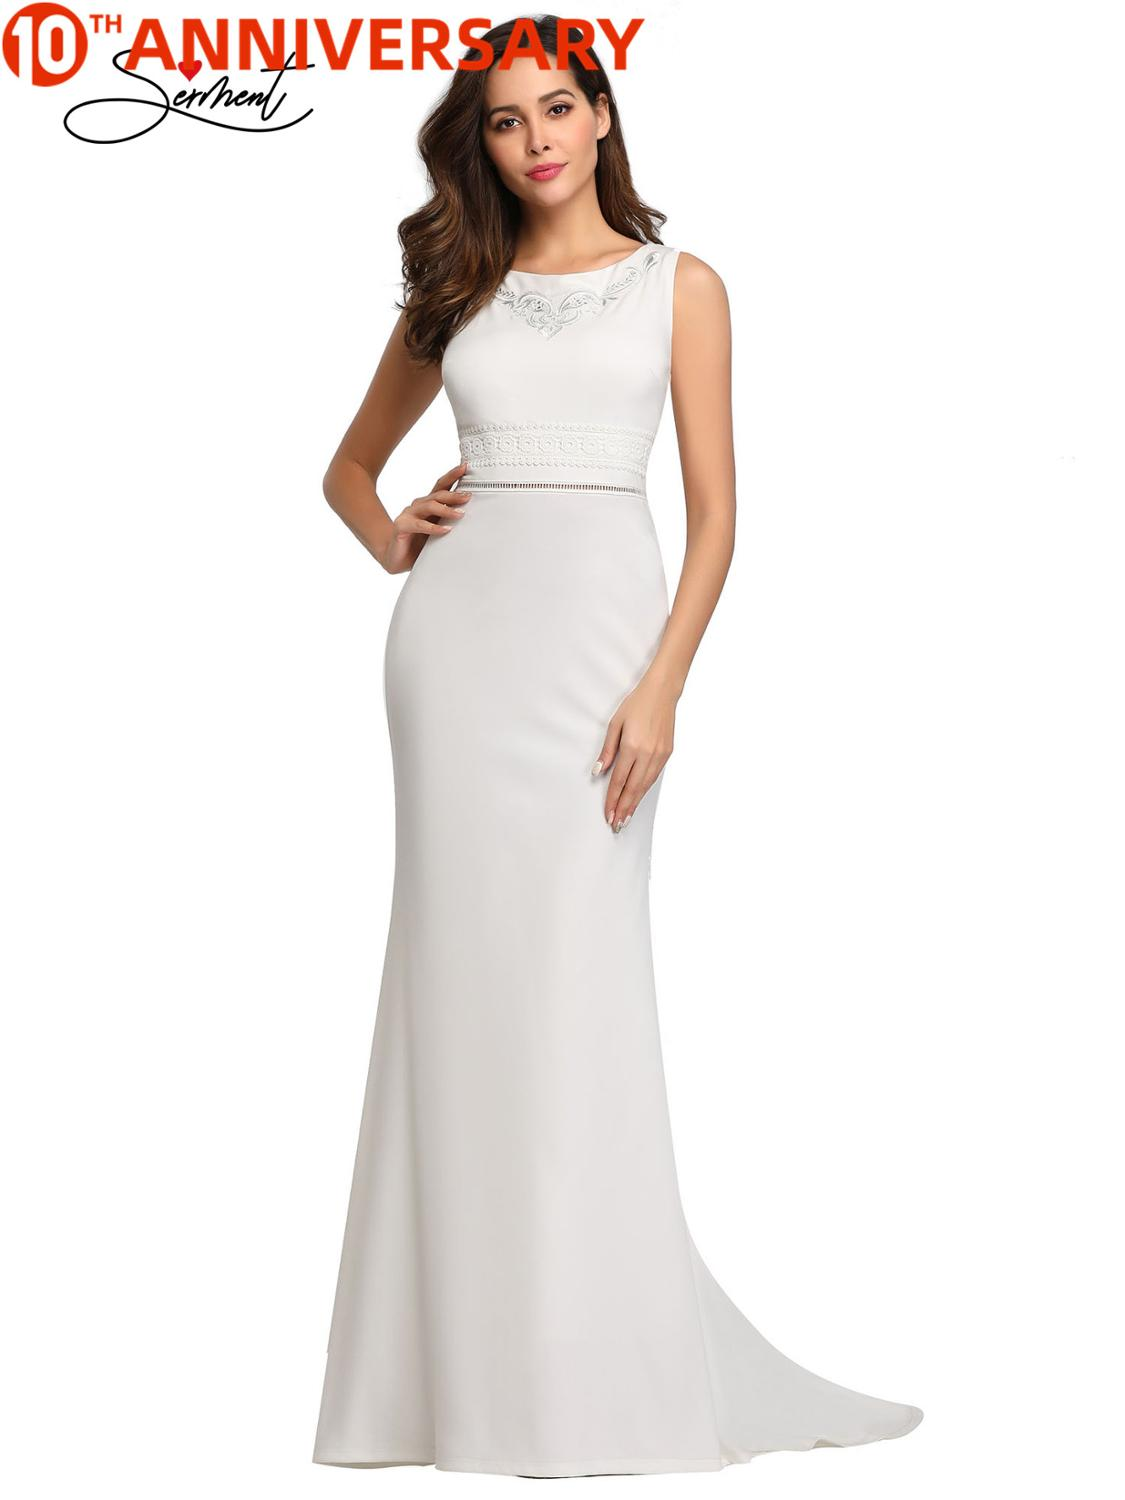 OLLYMURS New Elegant Woman Evening Gownv Pure White Round Neck Sleeveless Slim Tail Dress Suitable For Formal Parties